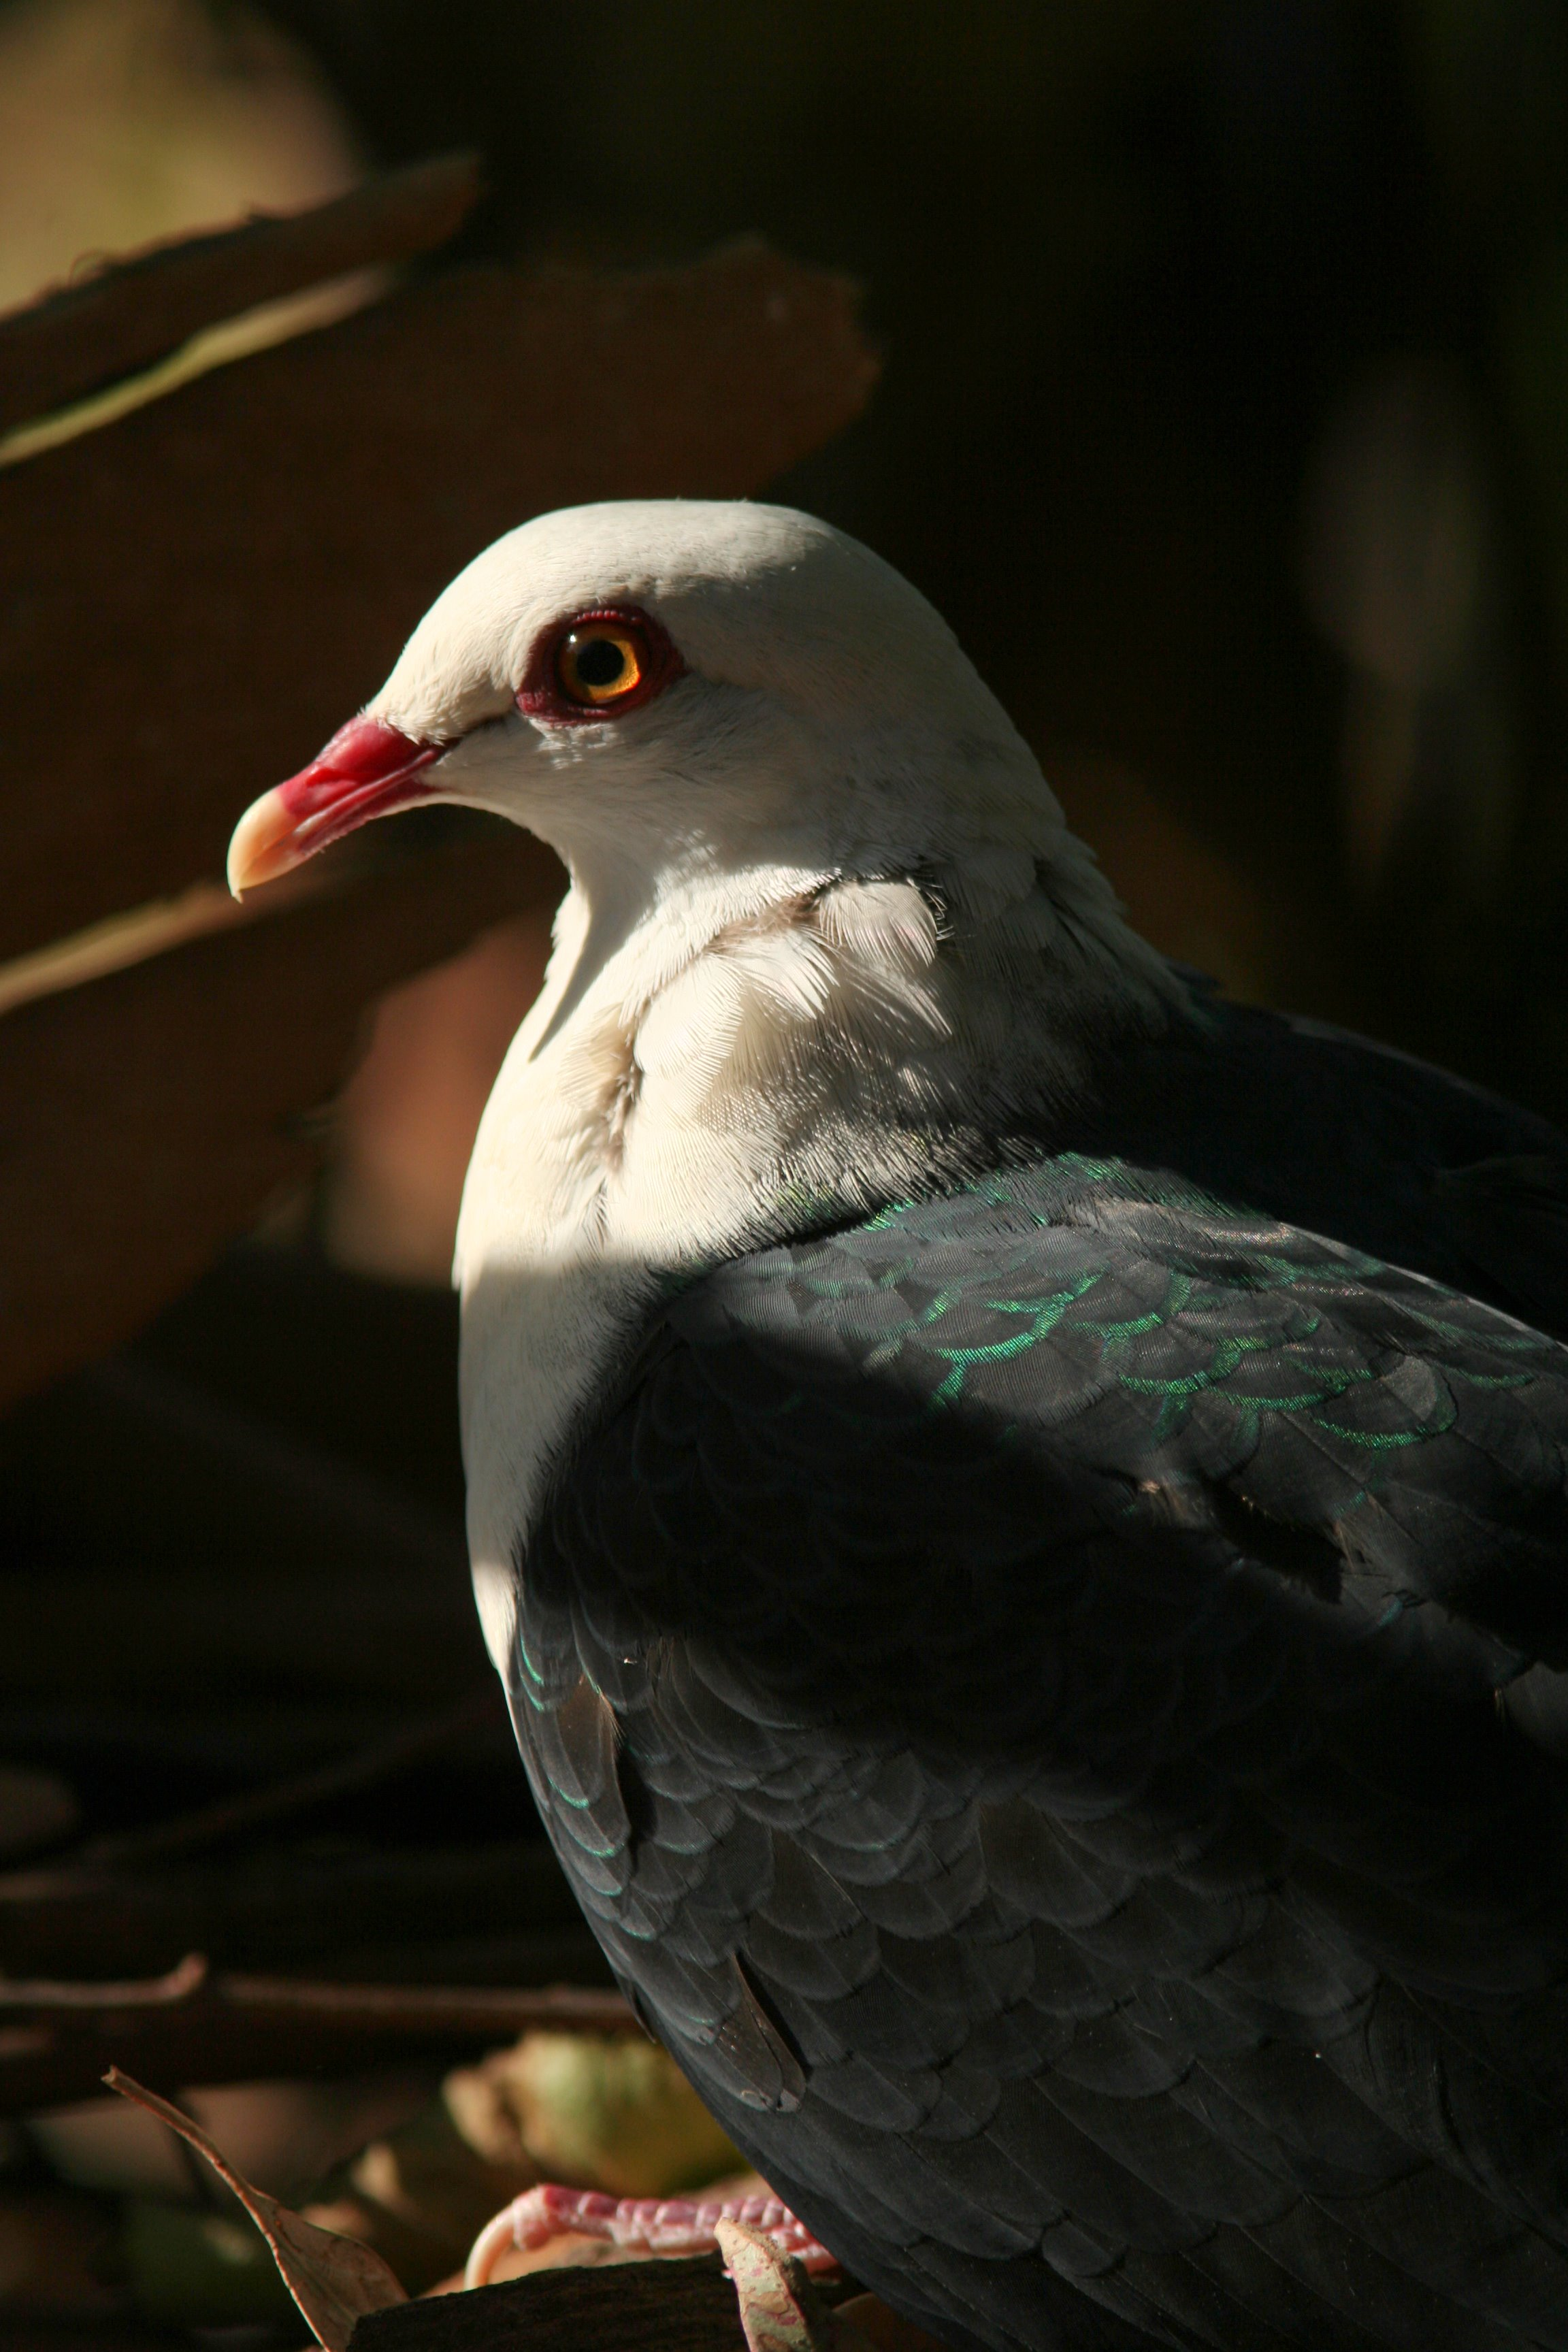 White headed Pigeon GlenFergus Wikipedia CC